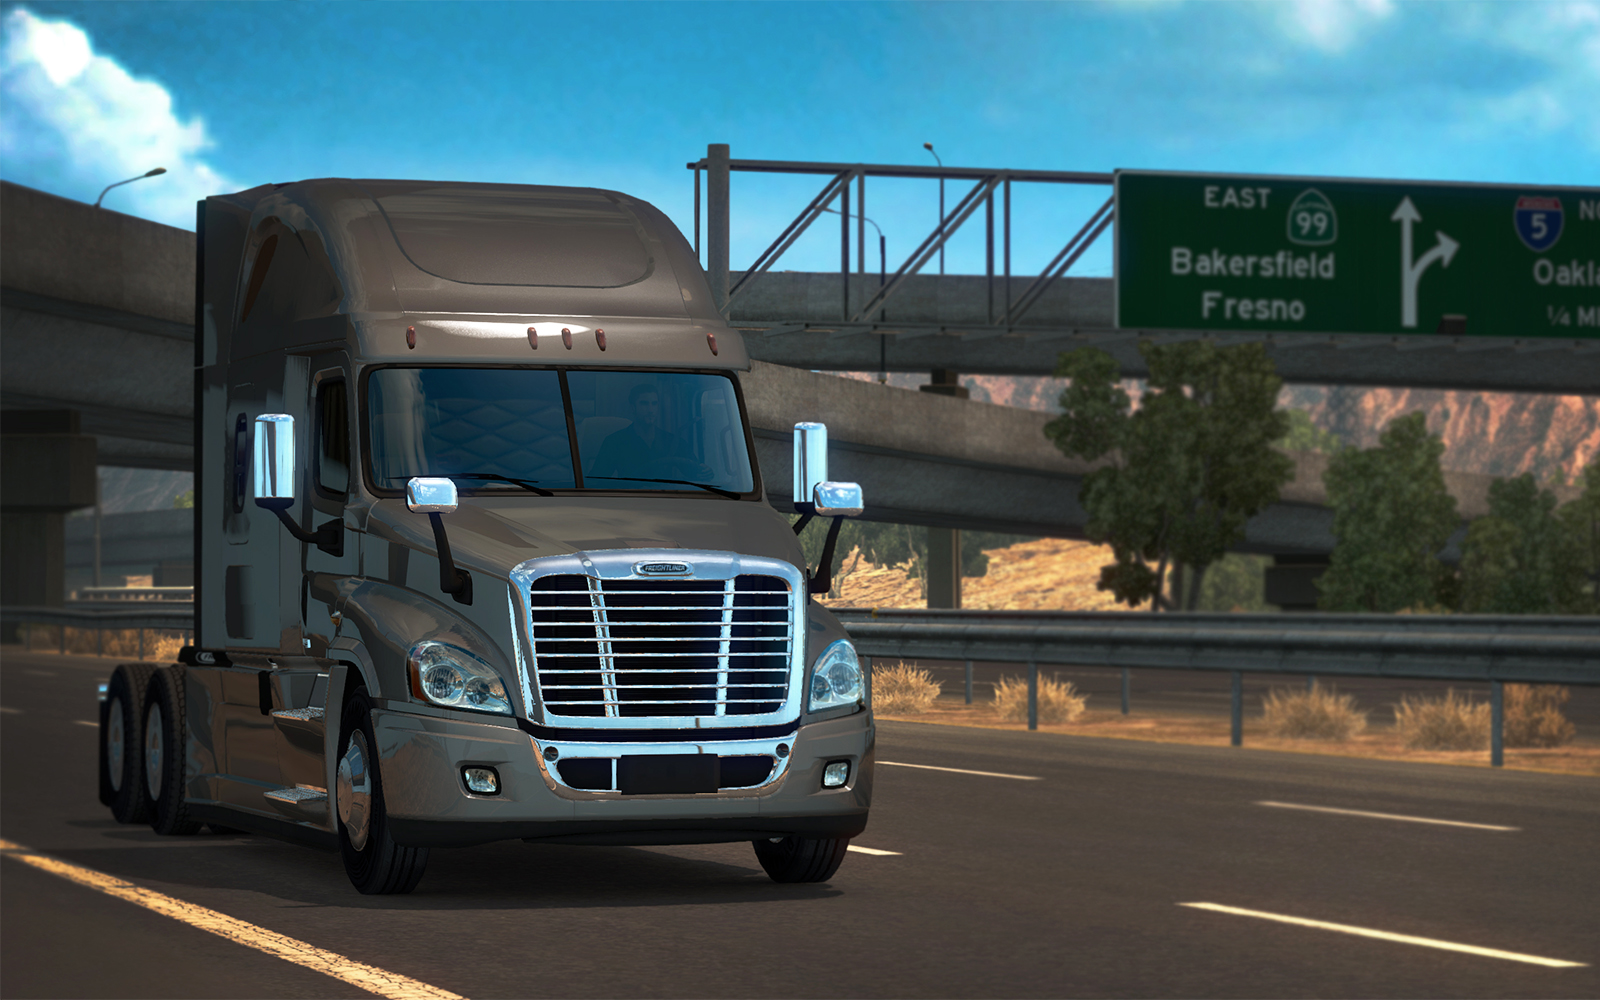 American Truck Simulator starts with two trucks | Feed4gamers